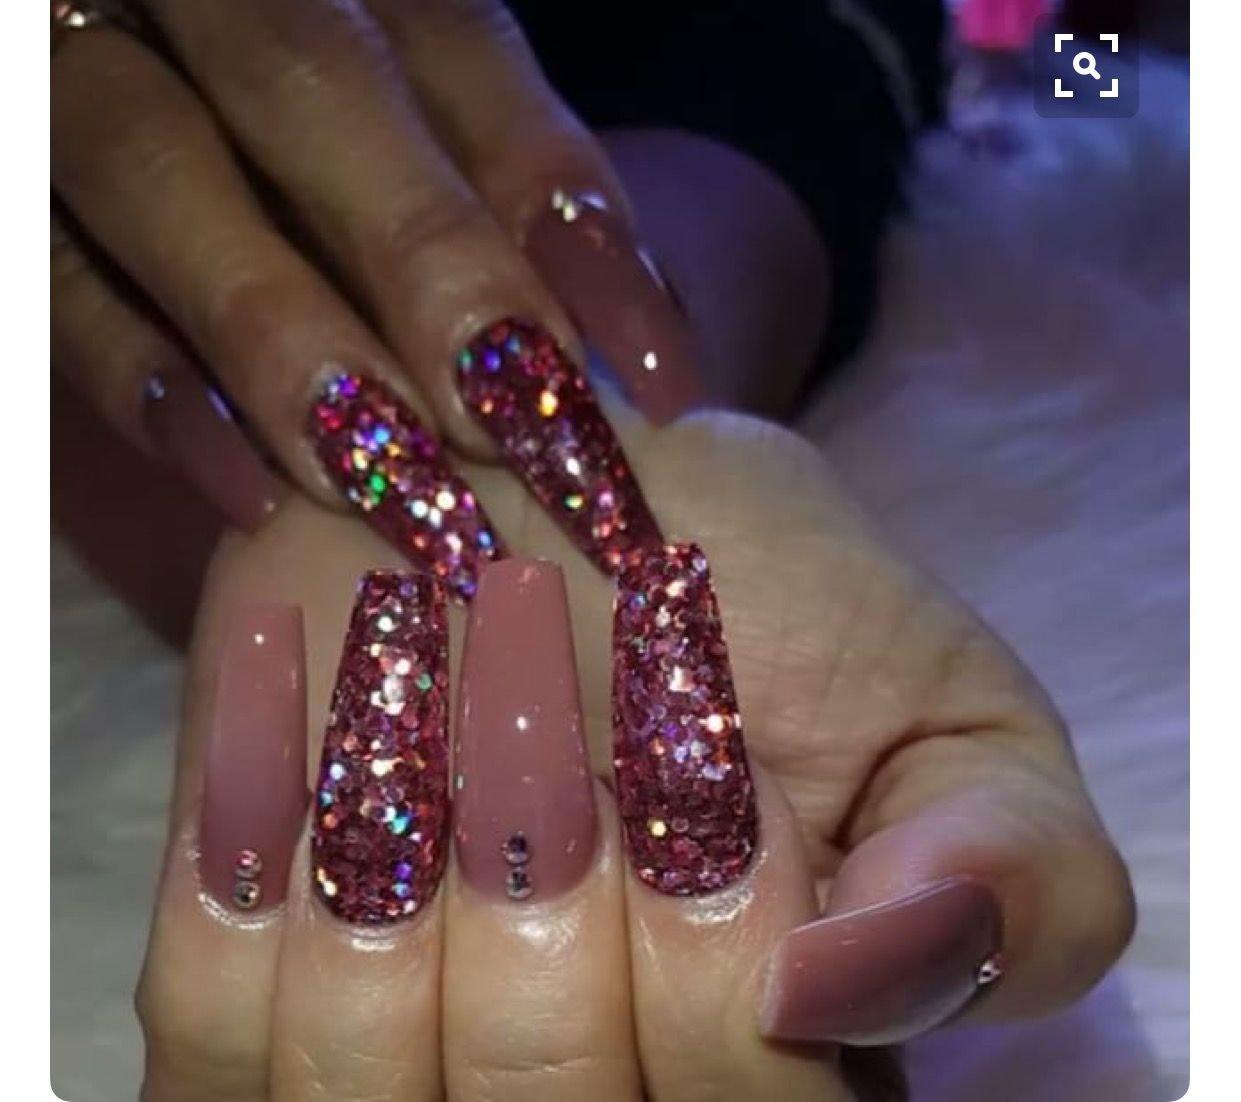 Pin by jancy lopez rivera on coffin nail design pinterest instagram ideas long nails short nails coffin nail designs nails design coffin nails acrylic nails acrylics kylie jenner prinsesfo Gallery